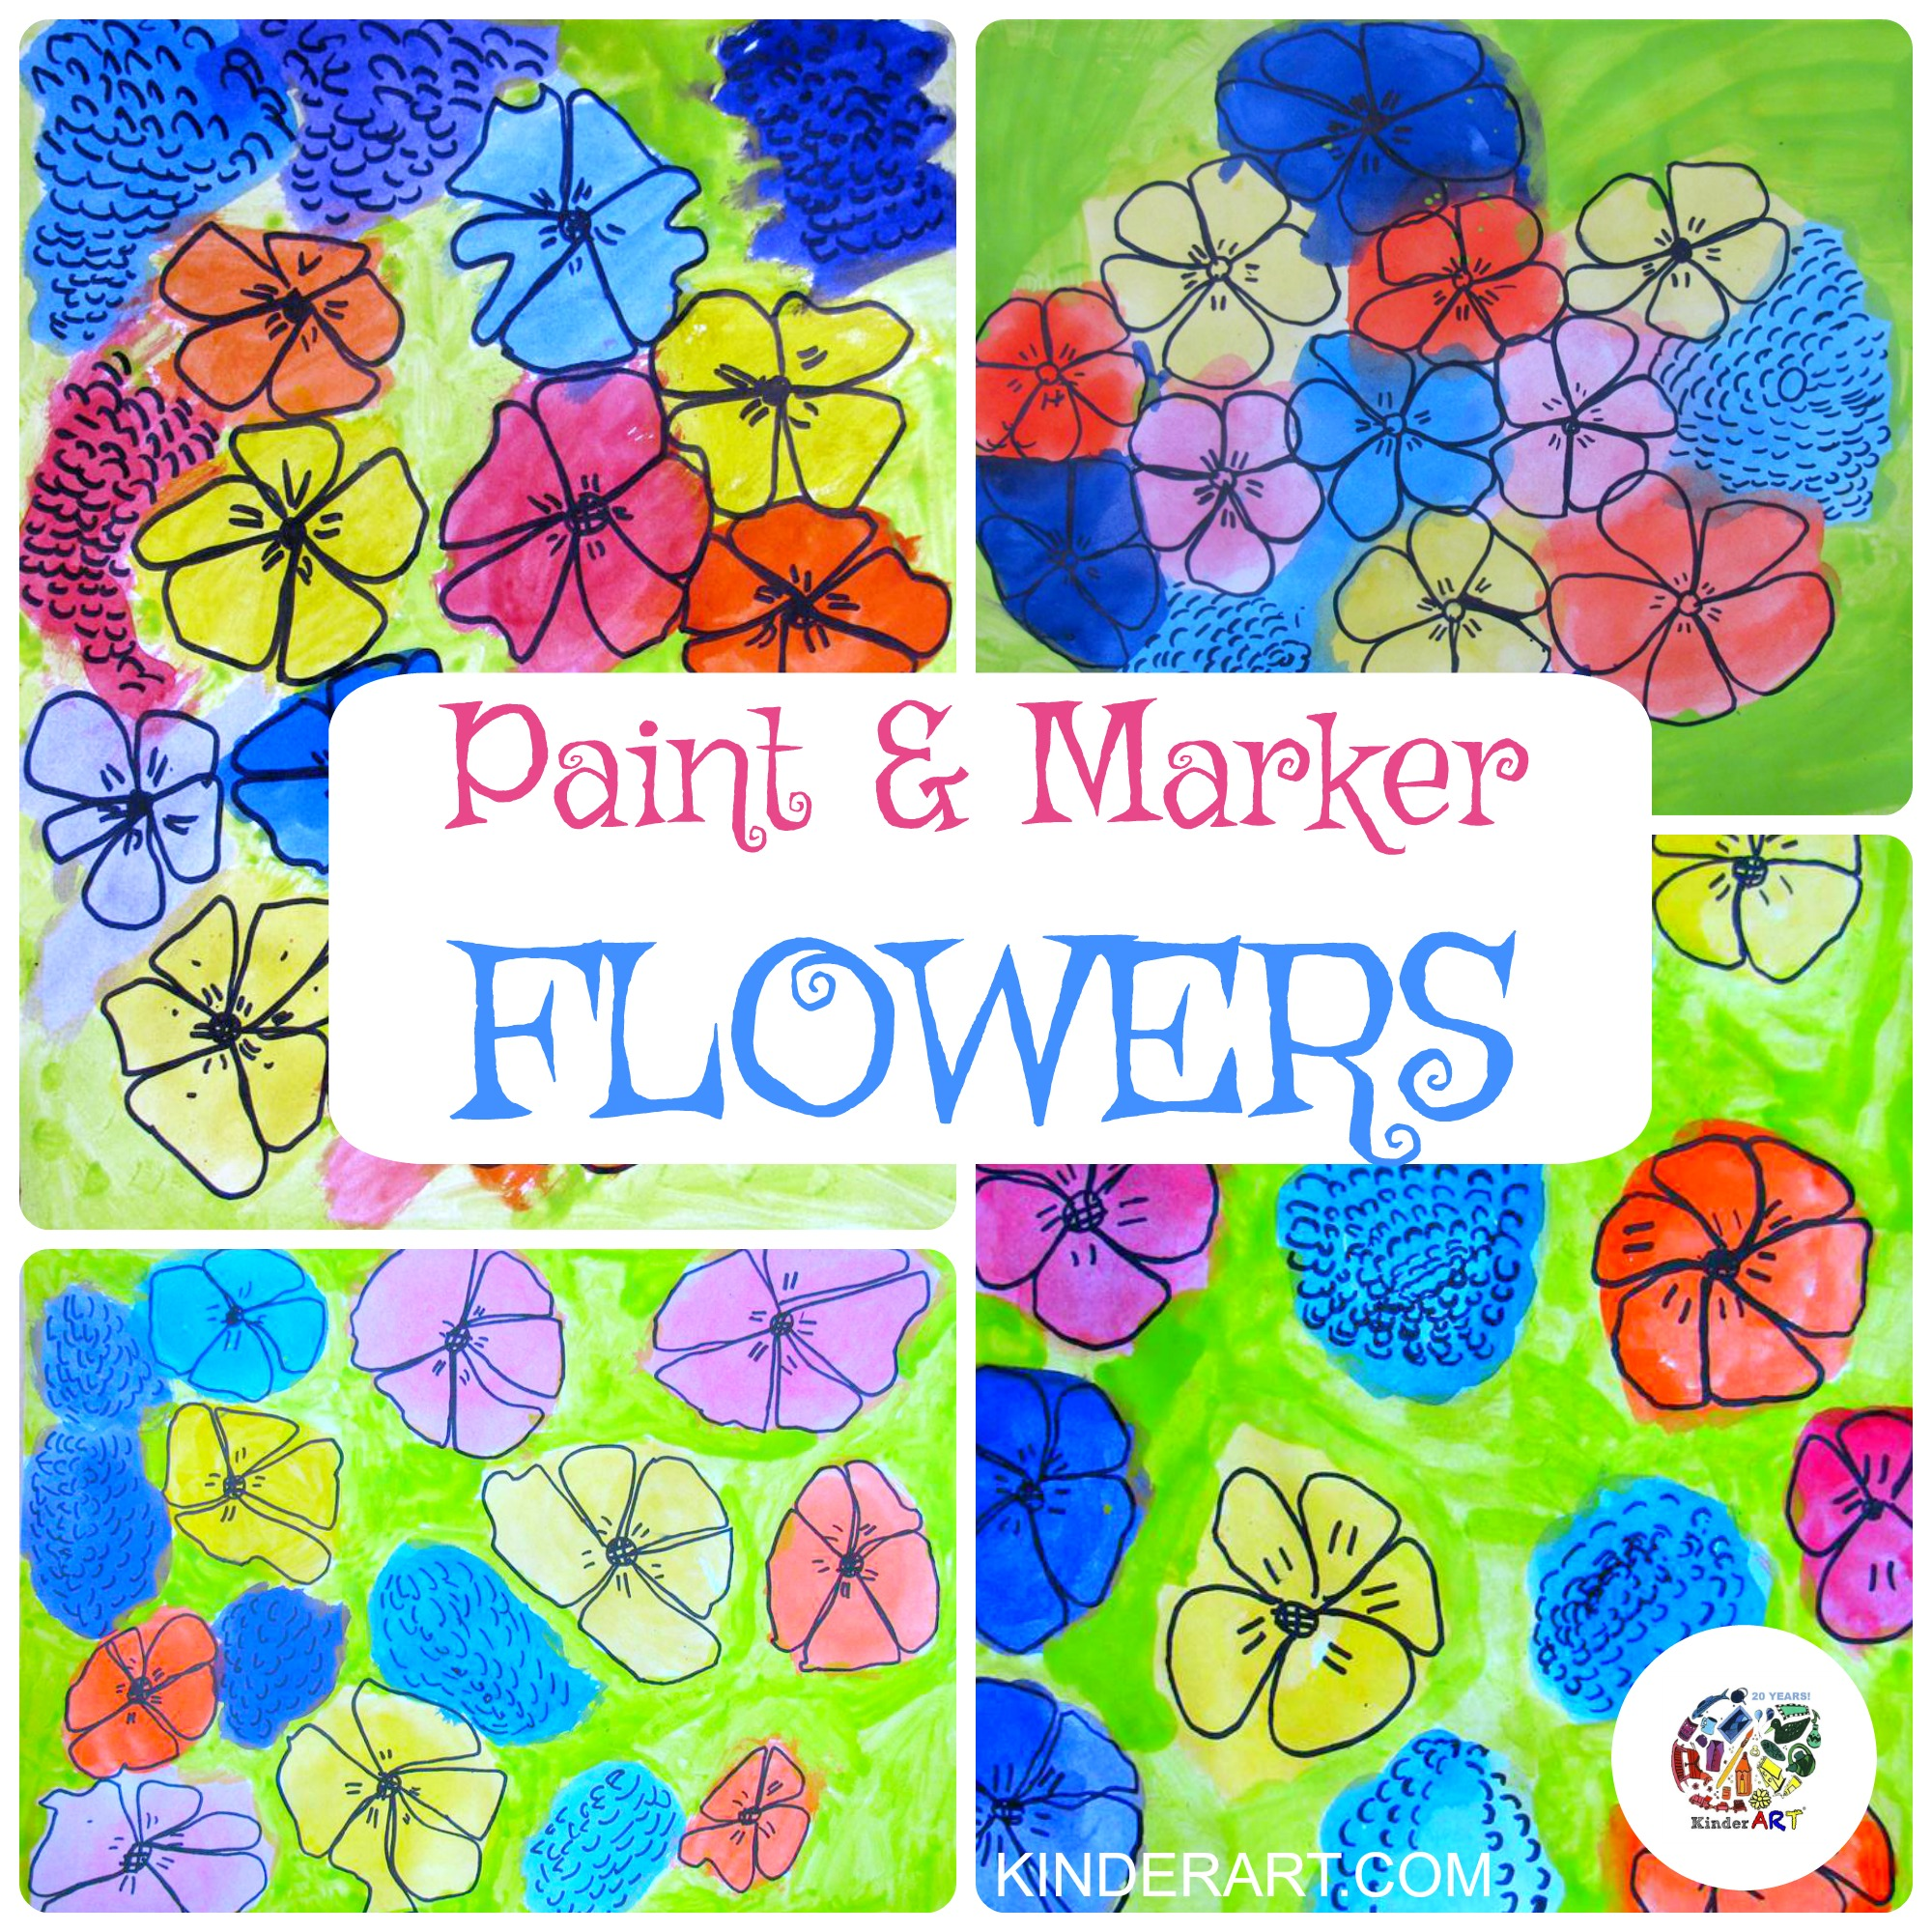 Paint and Marker Flowers